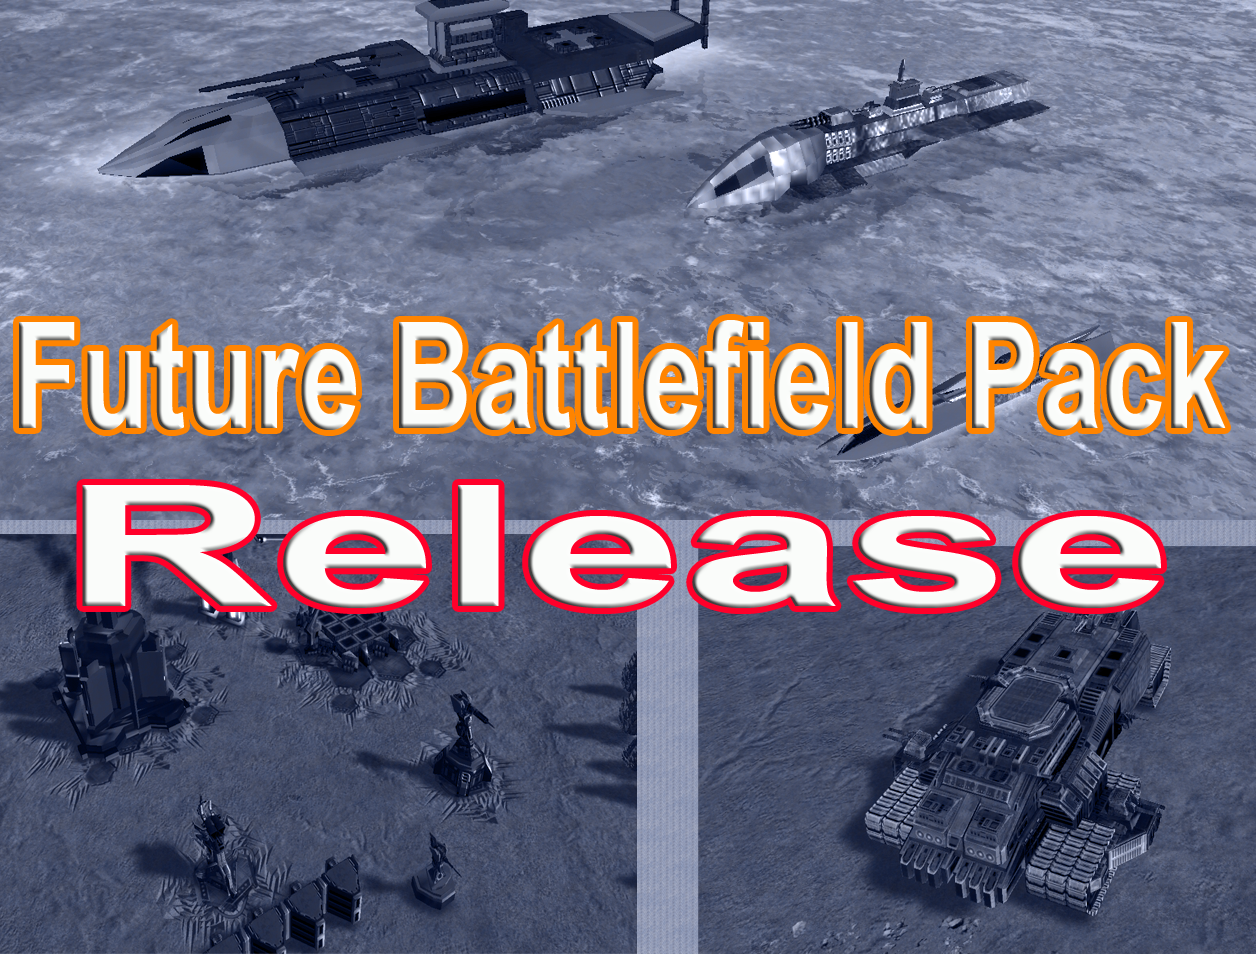 Future Battlefield Pack Release